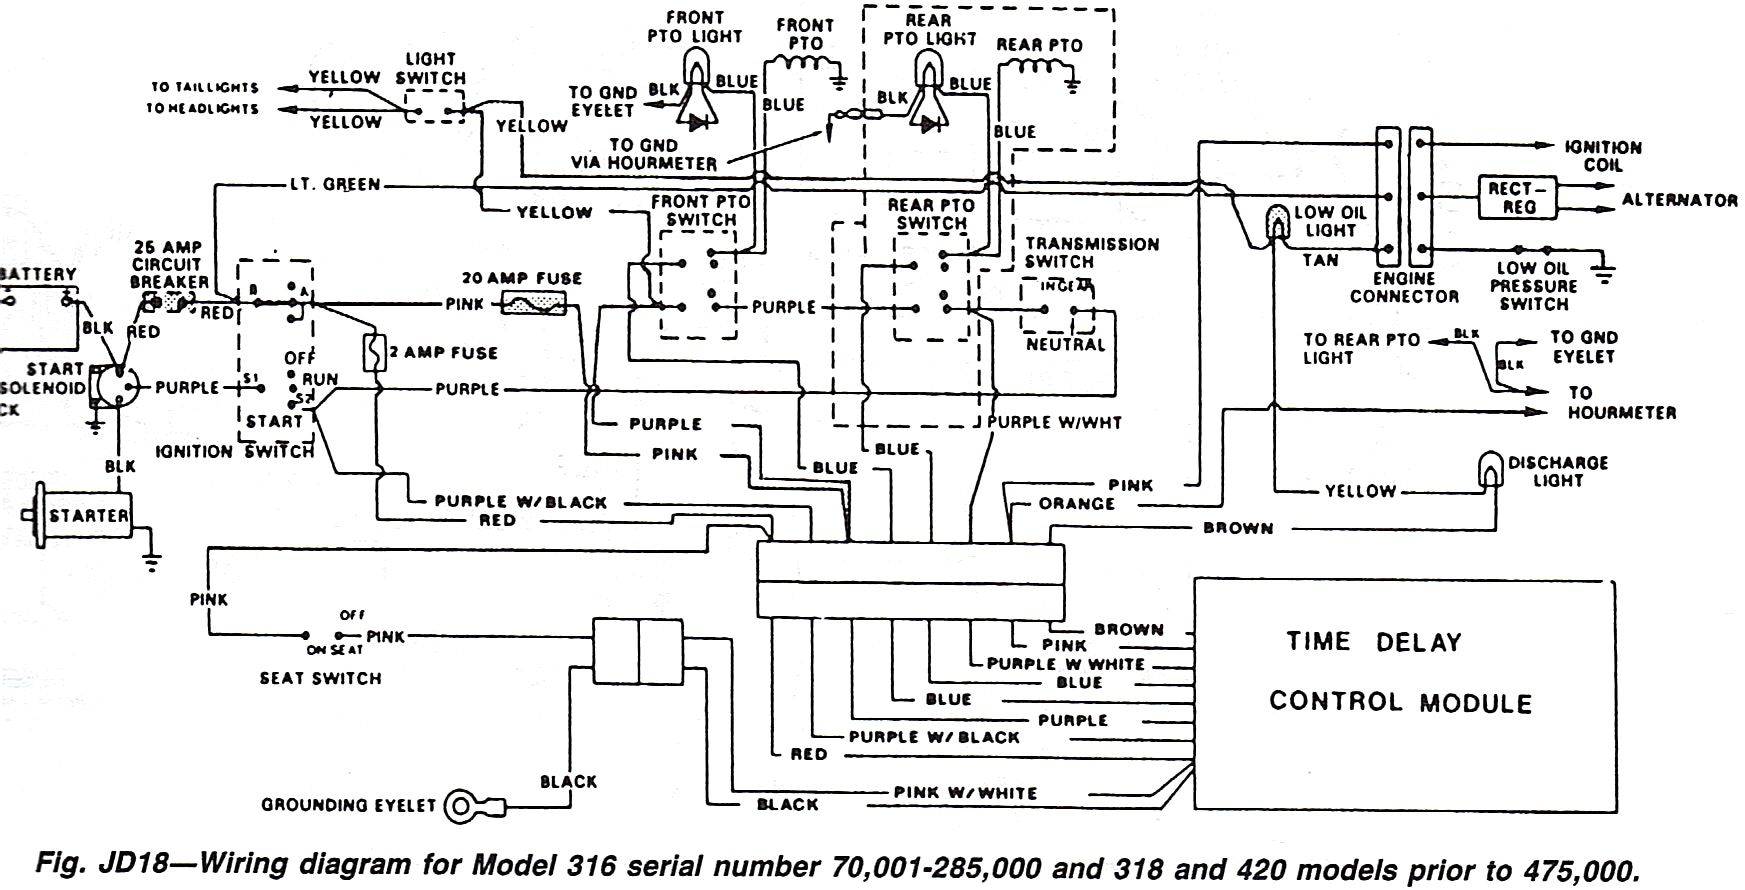 Pinterest John Deere Wiring Diagram Attachemnet on